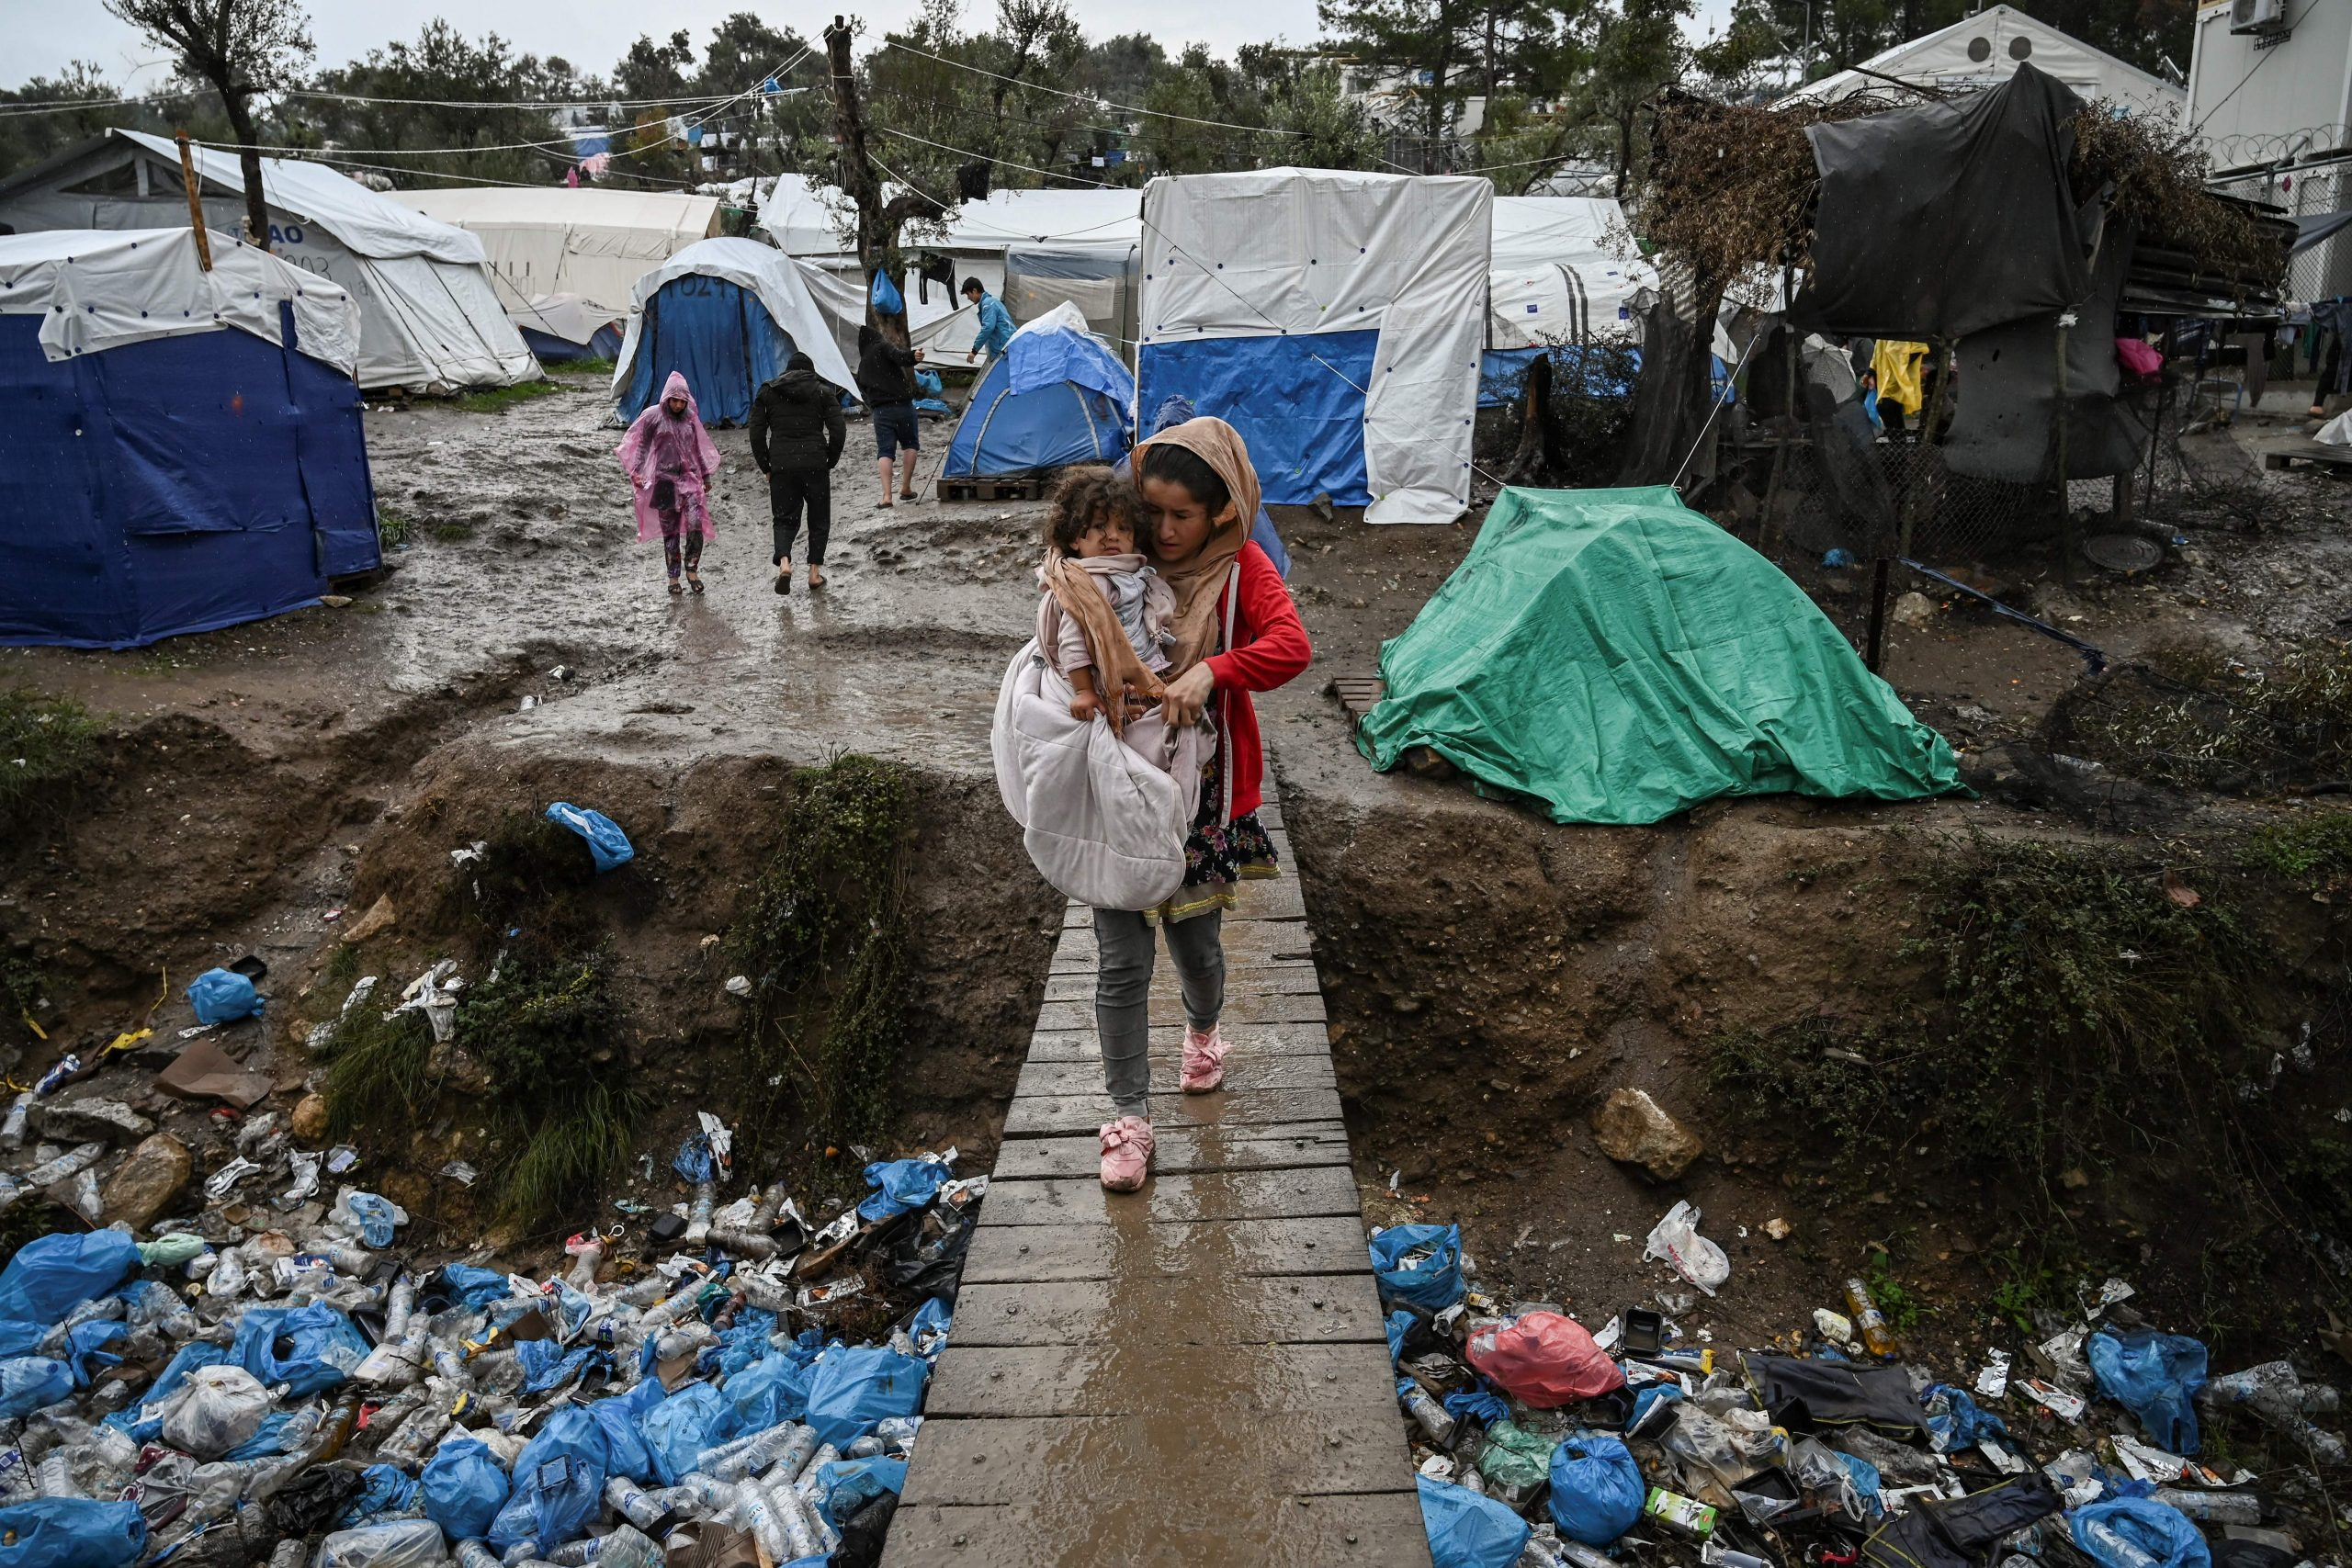 Greece: with camps on fire, transfer of vulnerable asylum-seekers to mainland must urgently resume